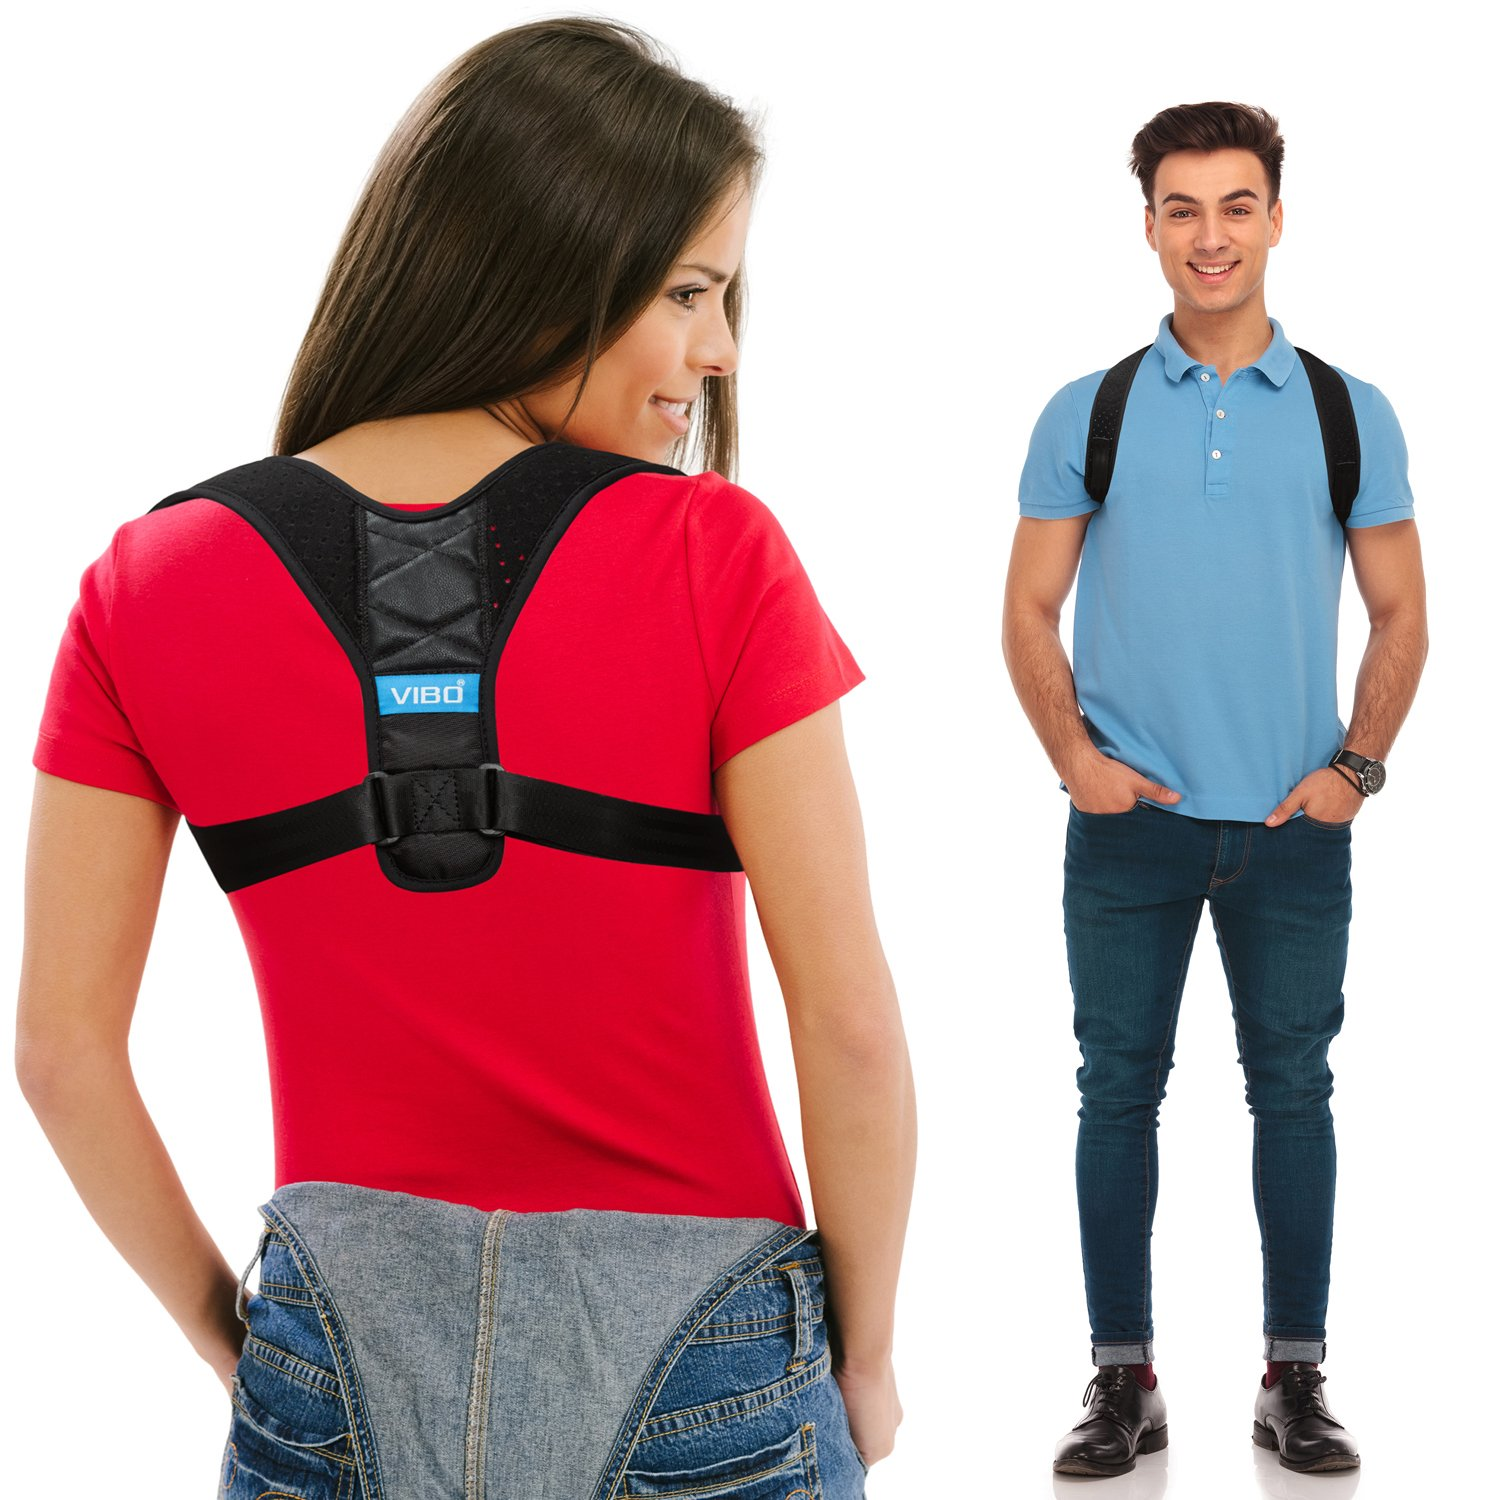 e35fdd0abf8b2 Posture Corrector for Men and Women - Comfortable Upper Back Brace Clavicle  Support Device for Thoracic